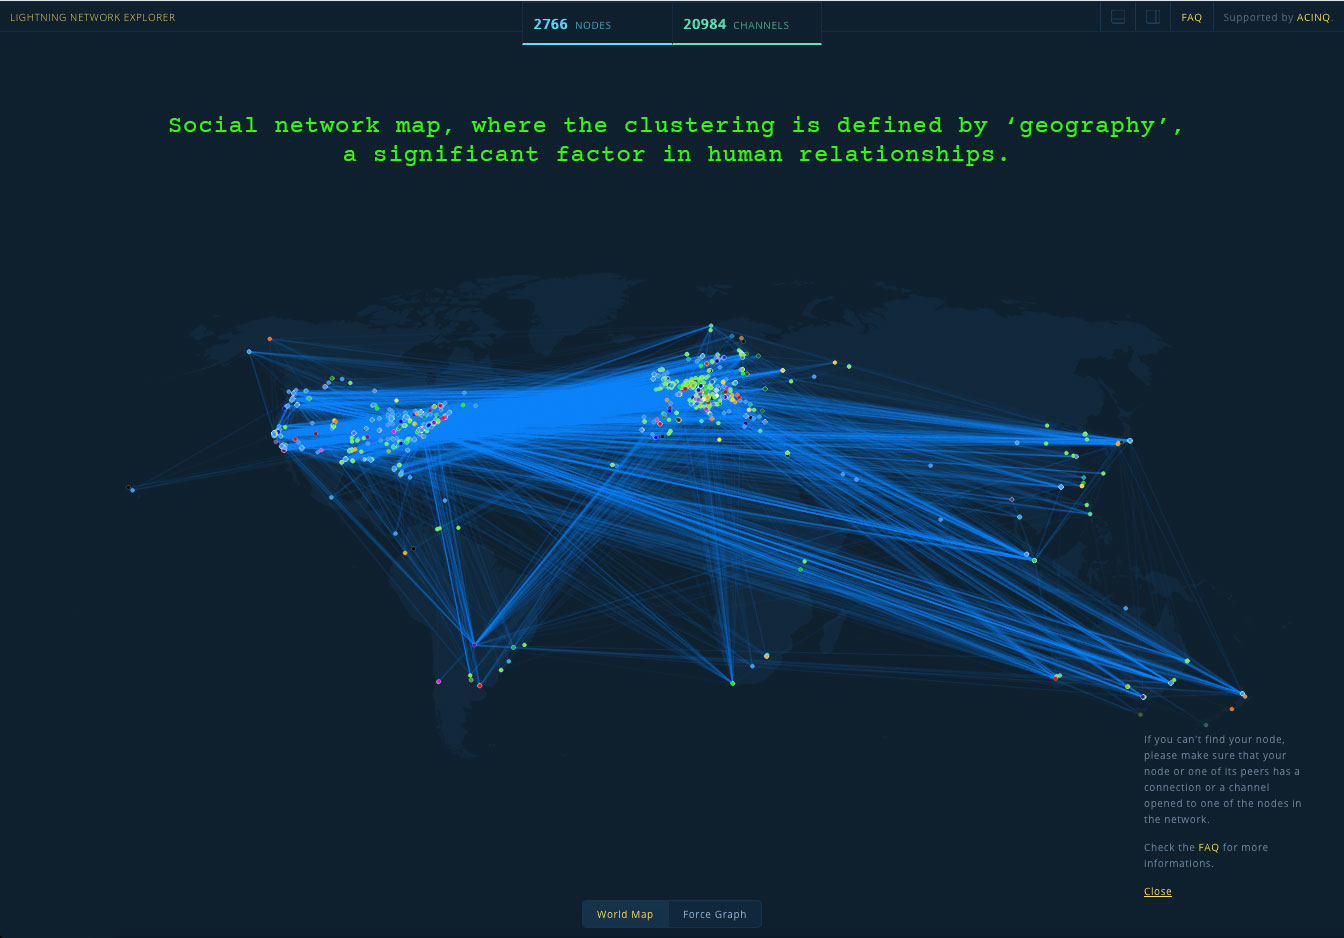 social network map determined by geography